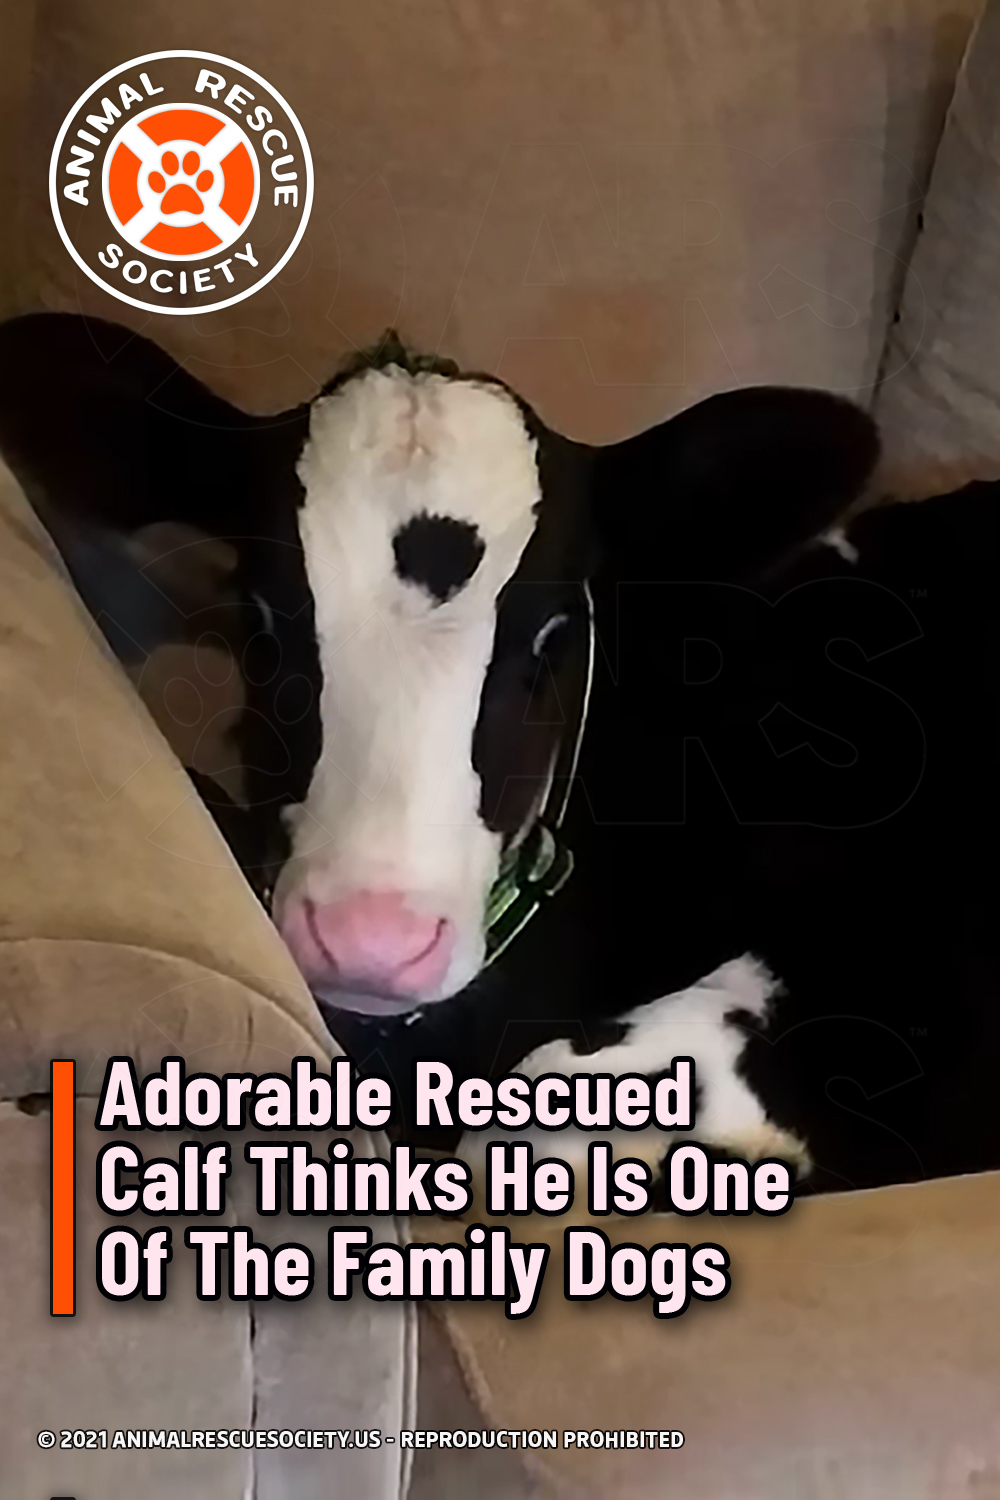 Adorable Rescued Calf Thinks He Is One Of The Family Dogs